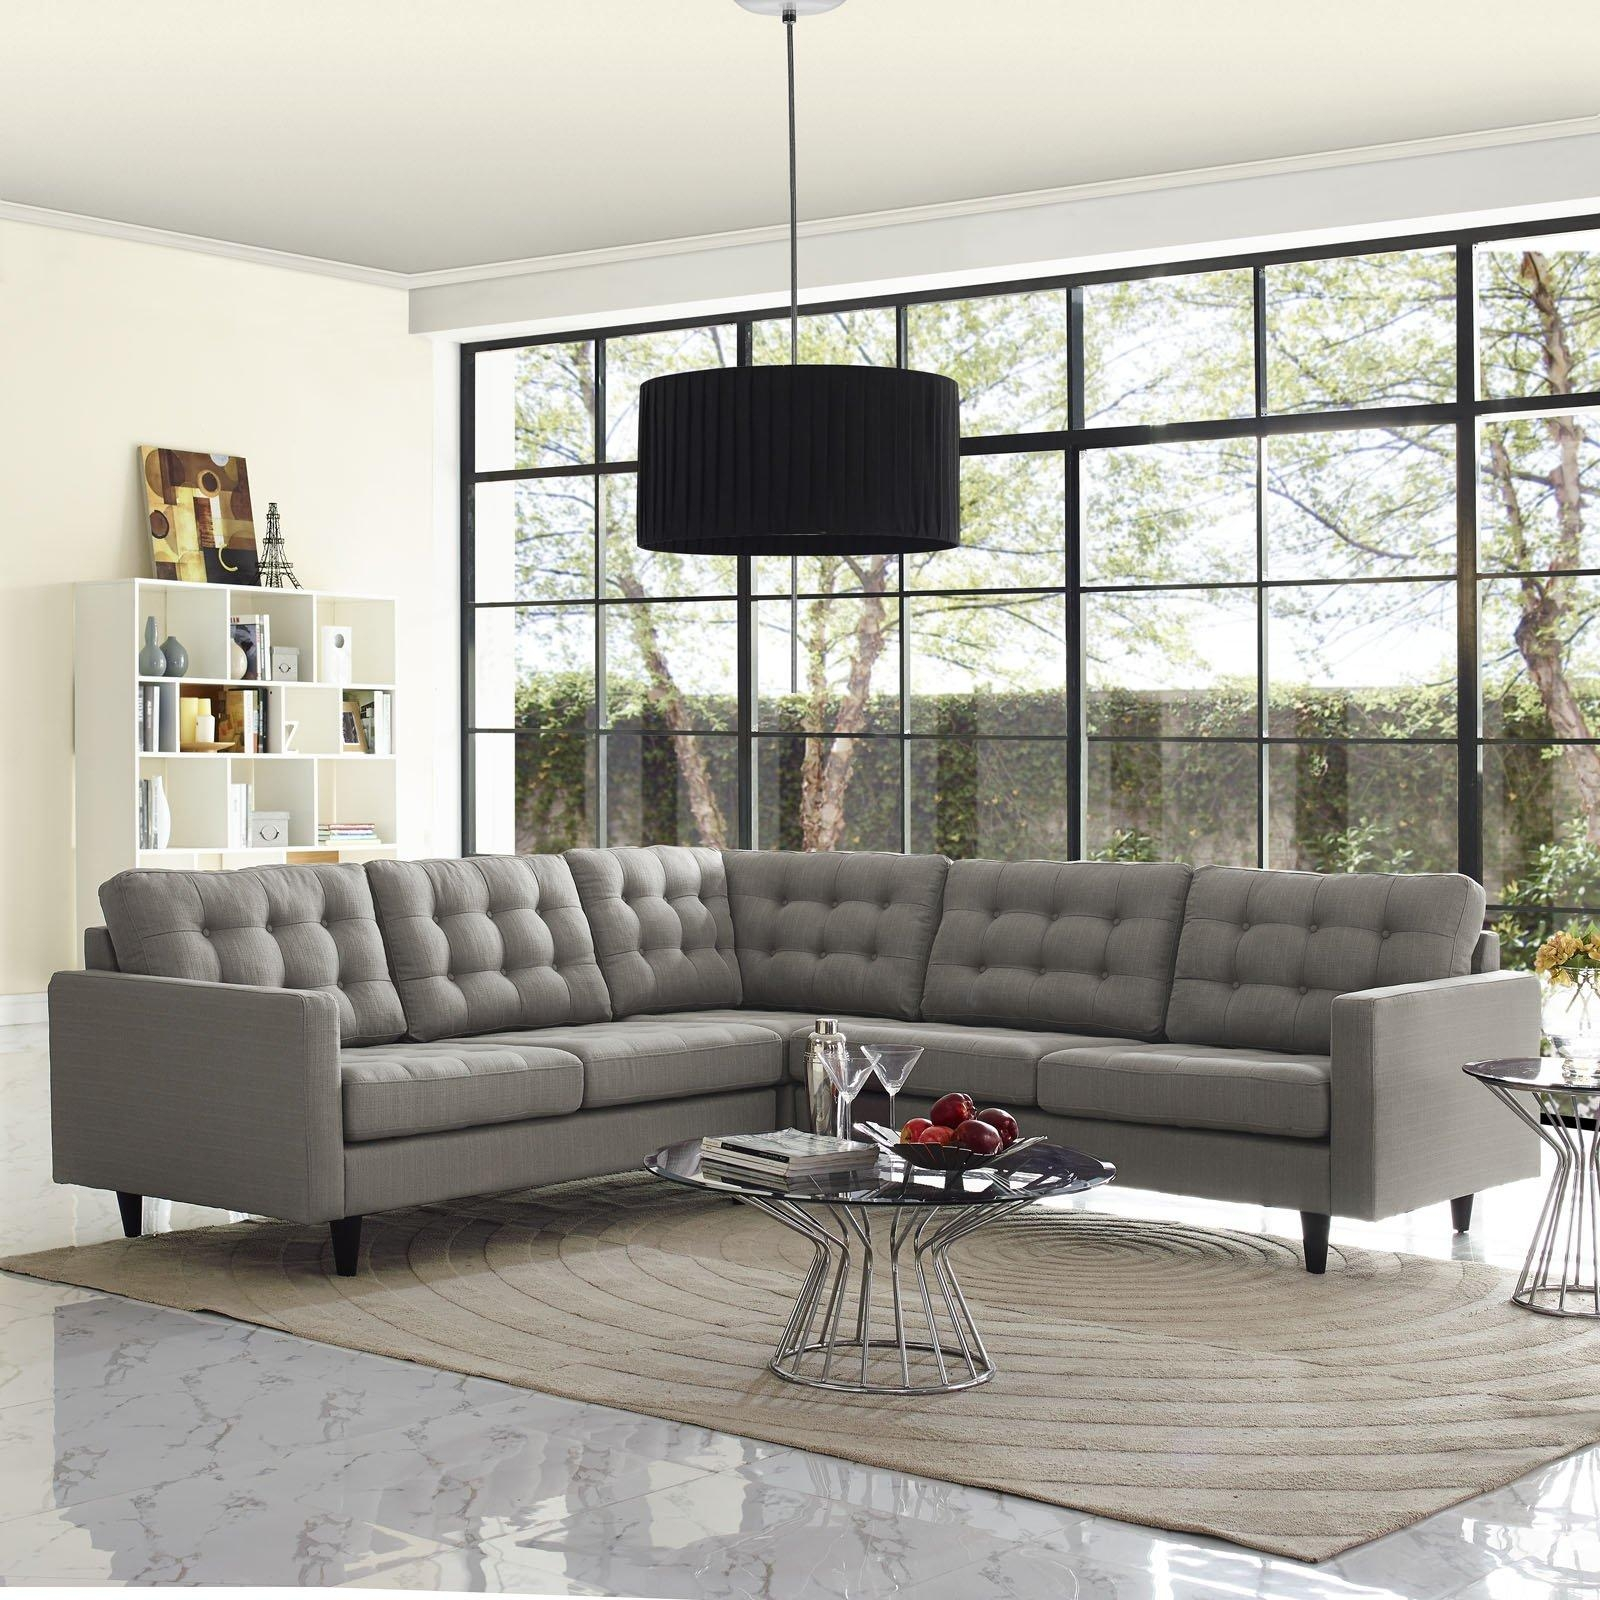 Sofas Center : Tufted Sectional Sofa With Chaise Leather Sofas Set With Regard To Tufted Sectional Sofa Chaise (View 19 of 20)